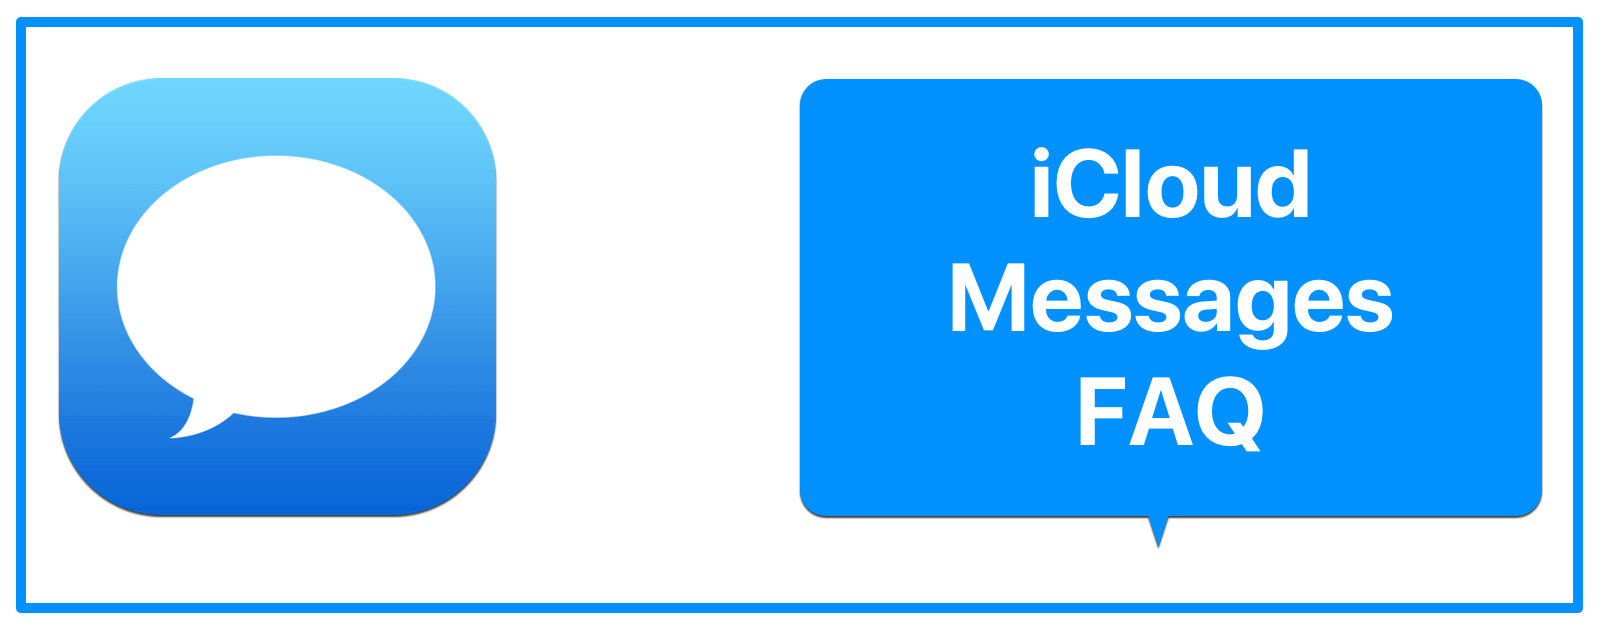 iCloud Messages FAQ: Here's What You Need to Know - The Mac